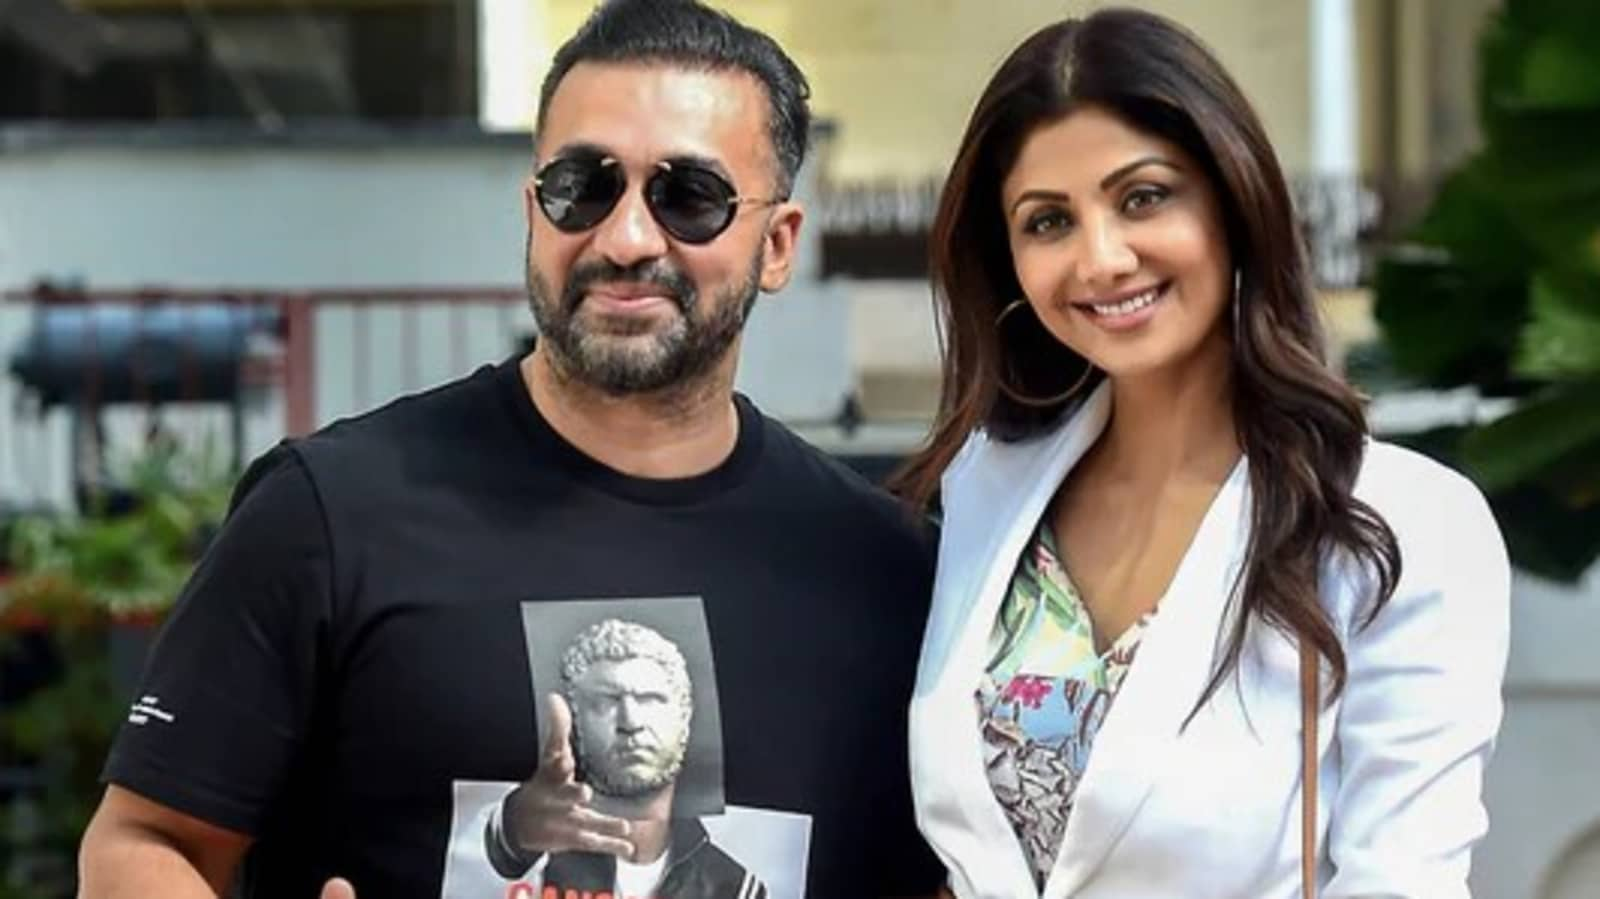 When Shilpa Shetty told Raj Kundra their relationship 'won't work', didn't  let him 'woo' her | Bollywood - Hindustan Times